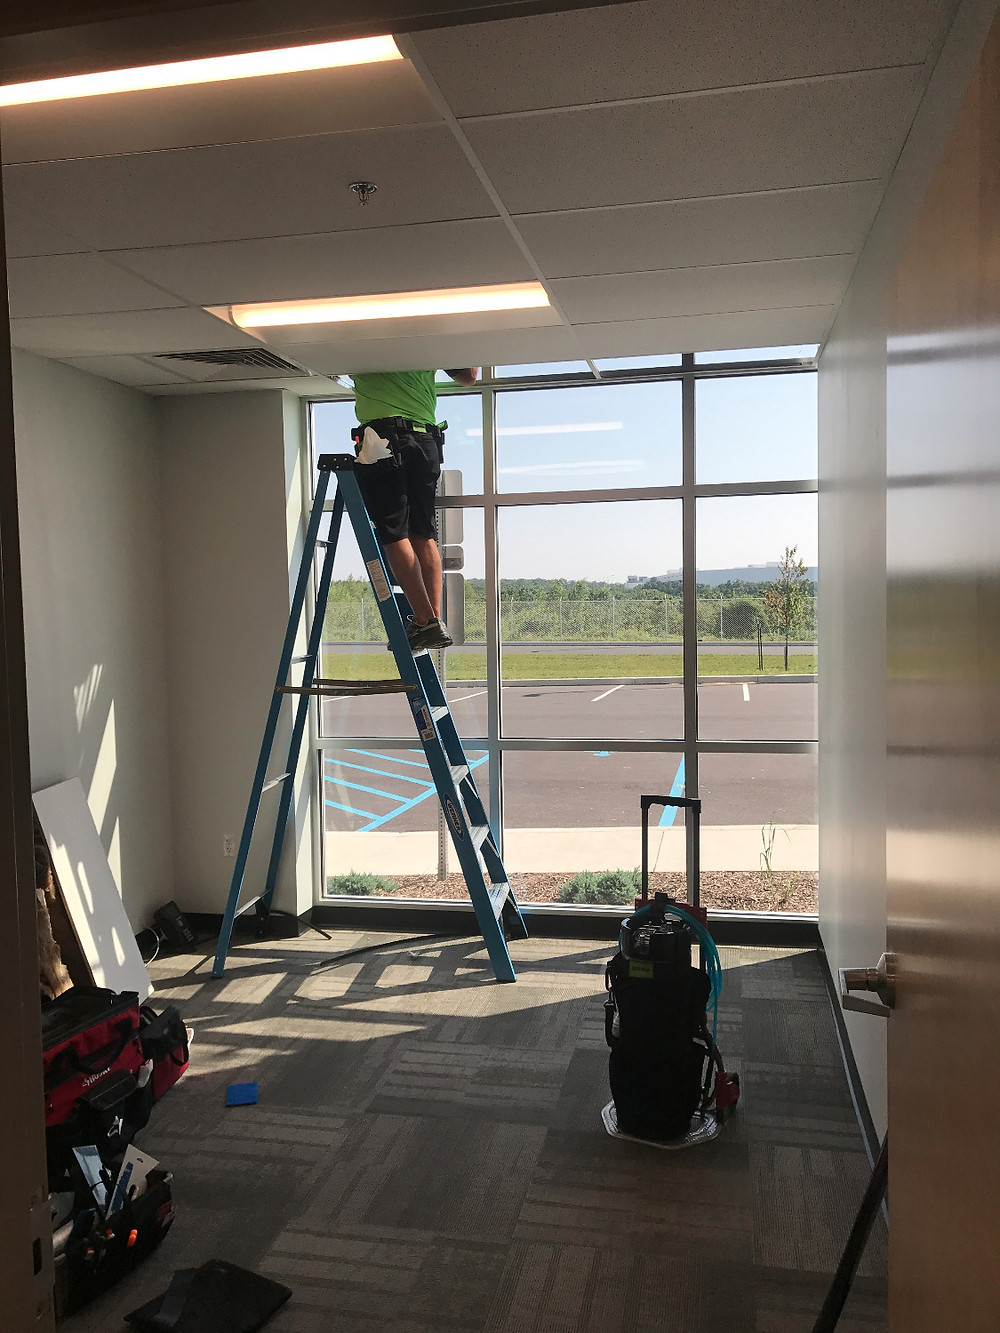 Tinting upper windows in office